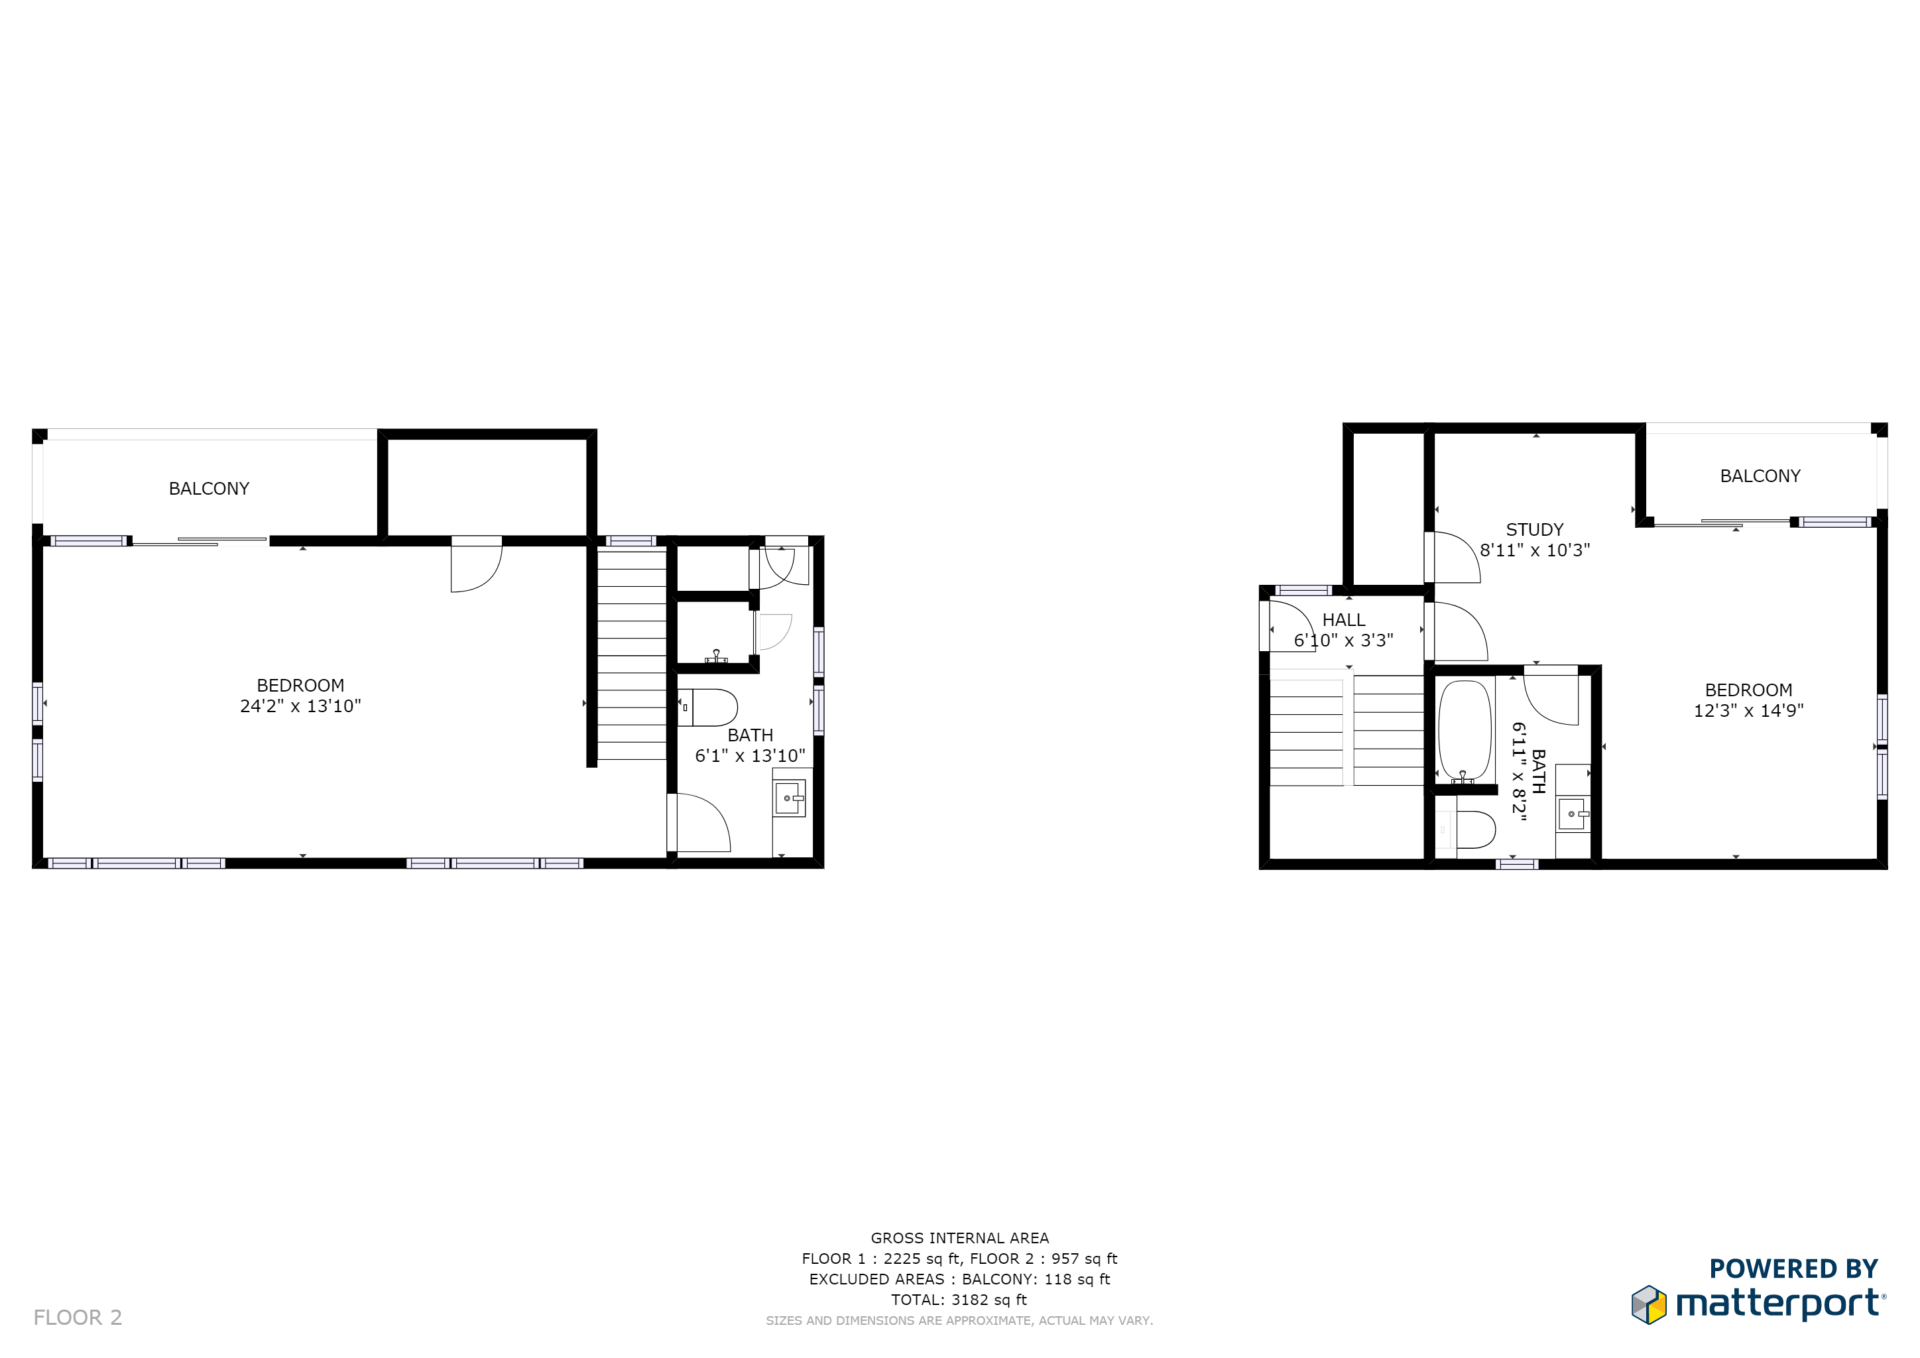 Orchard Rd, Fish Creek Floor Plan Orchard Rd, Fish Creek Floor Plan on